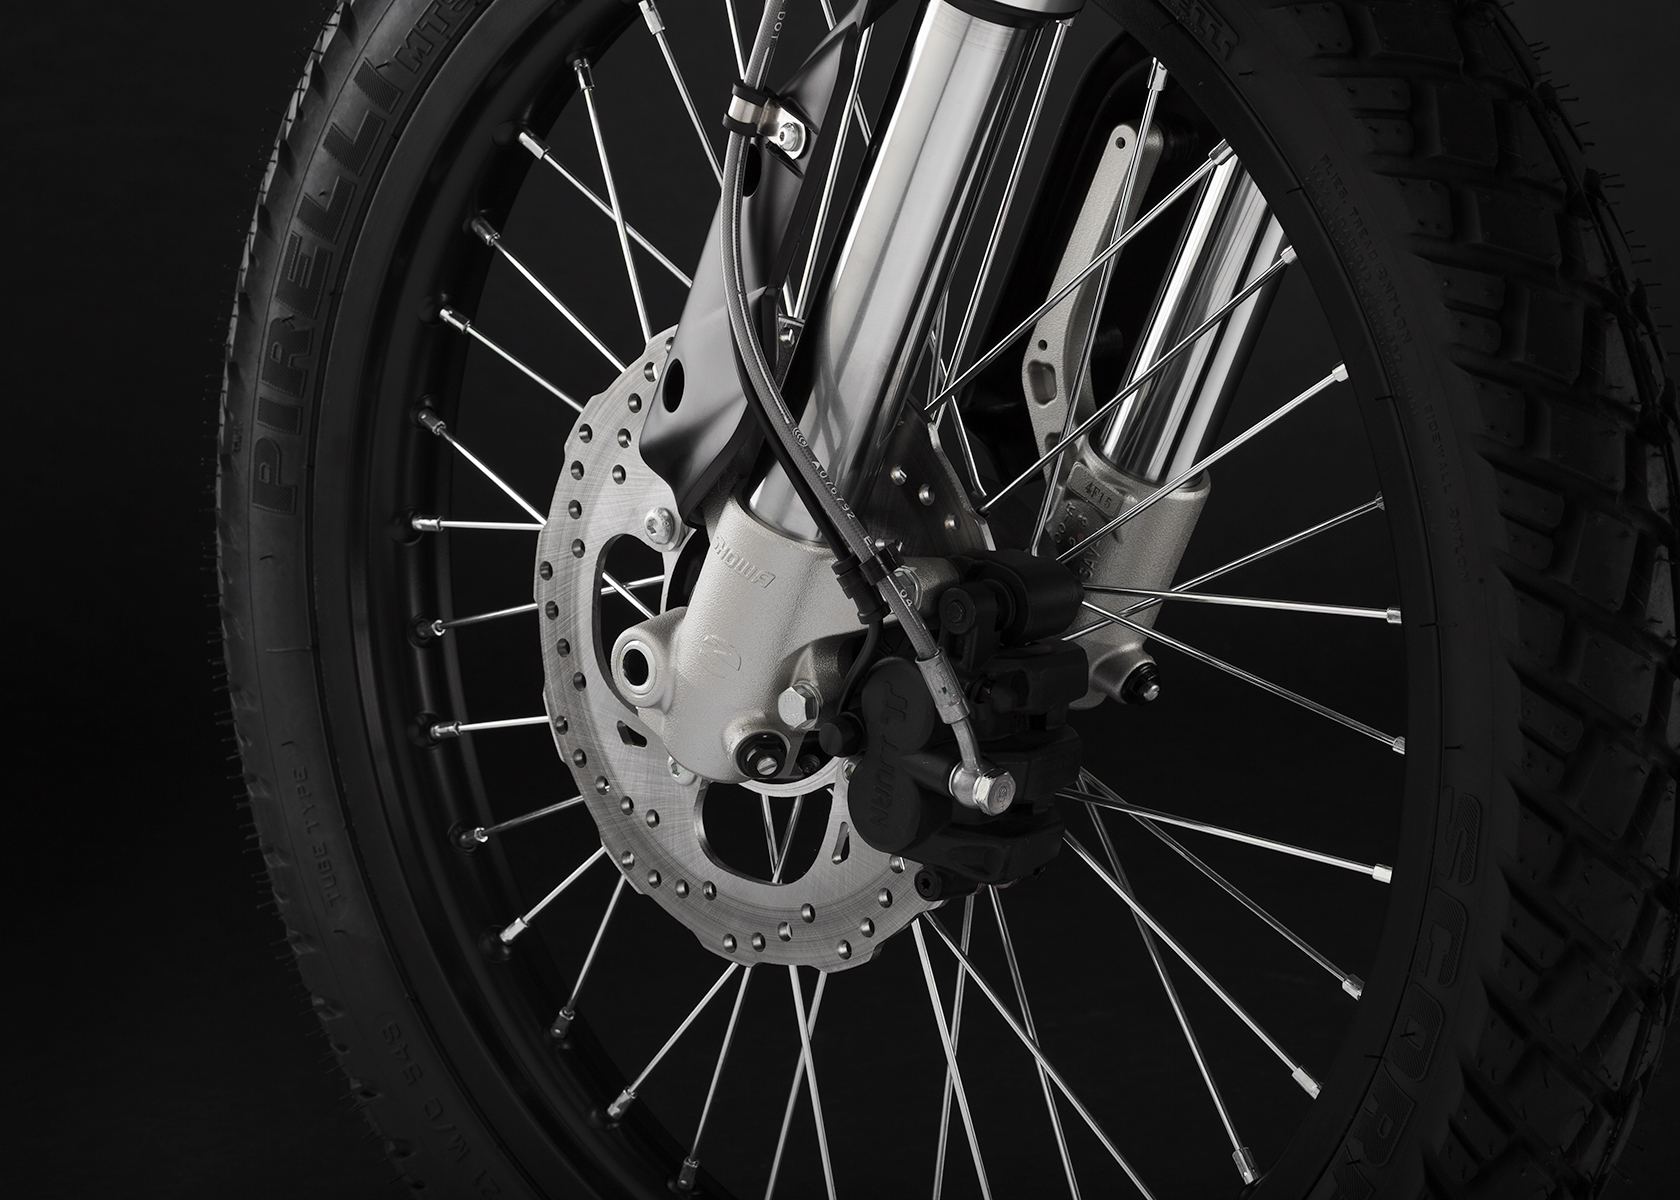 2015 Zero FX Electric Motorcycle: Front Brake